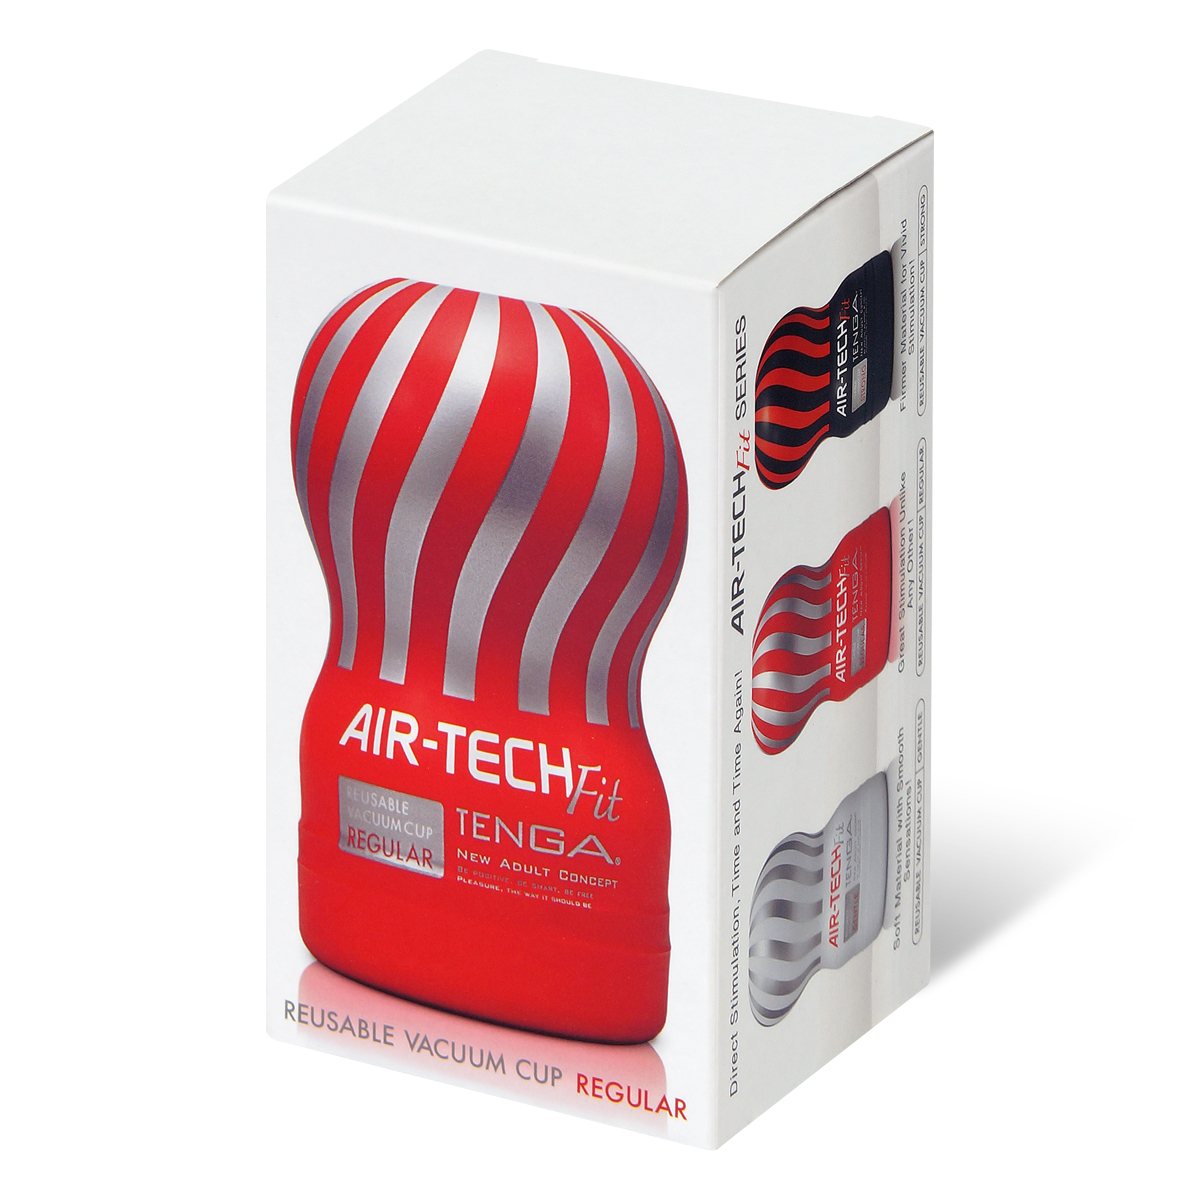 TENGA AIR-TECH Fit Reusable Vacuum CUP REGULAR